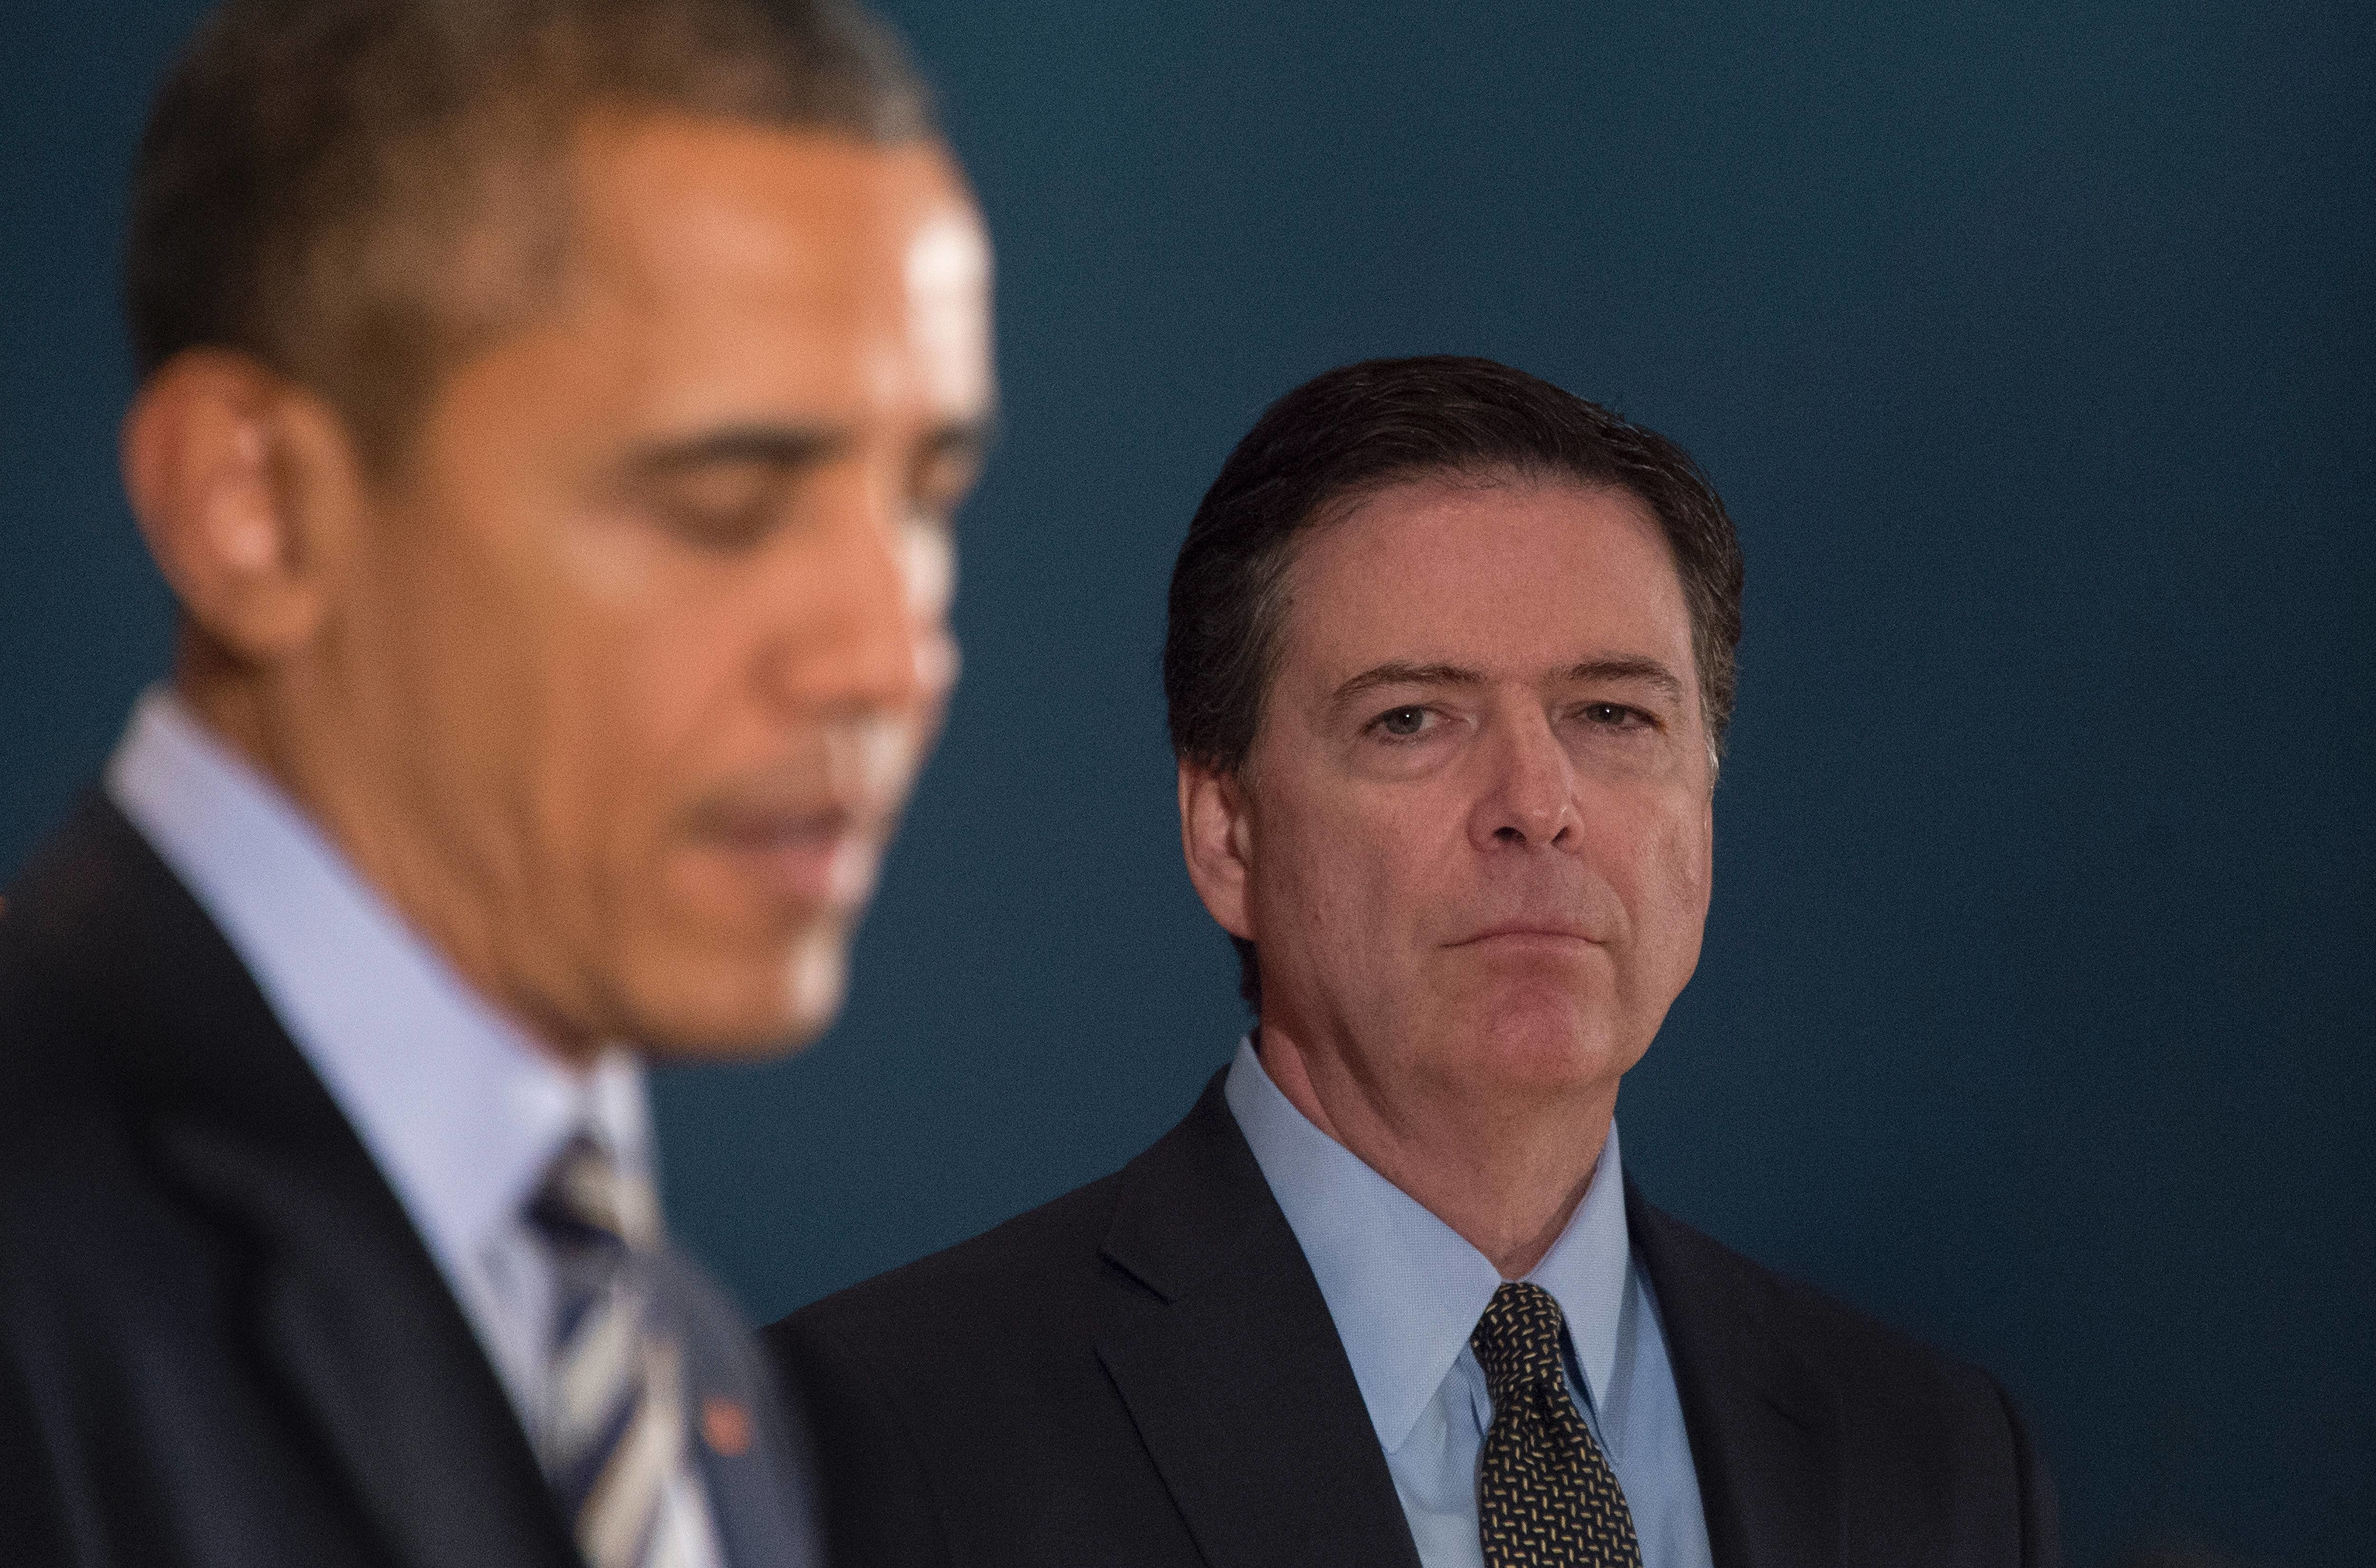 Director of the Federal Bureau of Investigations (FBI) James Comey (R) looks on as US President Barack Obama delivers remarks after a national security team meeting at the National Counterterrorism Center in McLean, Virginia, December 17, 2015. Obama said Thursday that there was no 'specific' terror threat to the United States but urged Americans to remain alert over the holiday period.  AFP PHOTO / JIM WATSON / AFP / JIM WATSON        (Photo credit should read JIM WATSON/AFP/Getty Images)